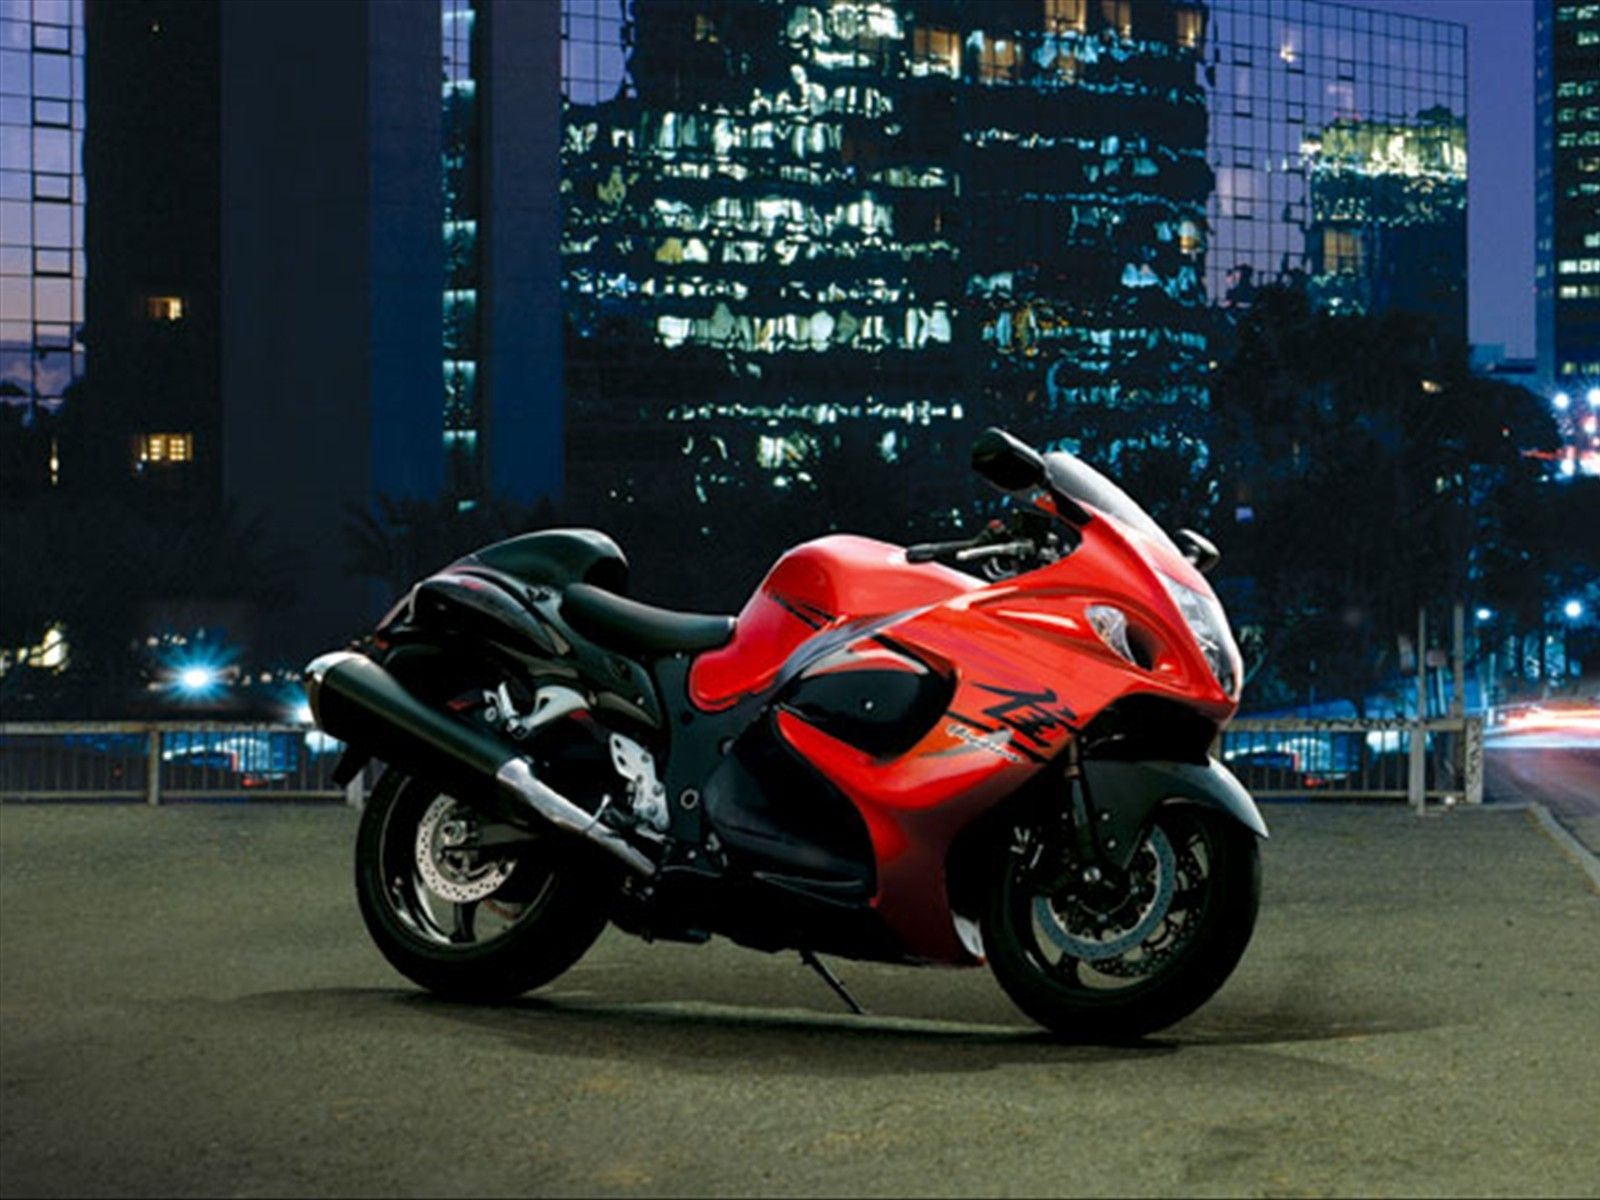 Click here to download in hd format suzuki hayabusa wallpaper 21 http